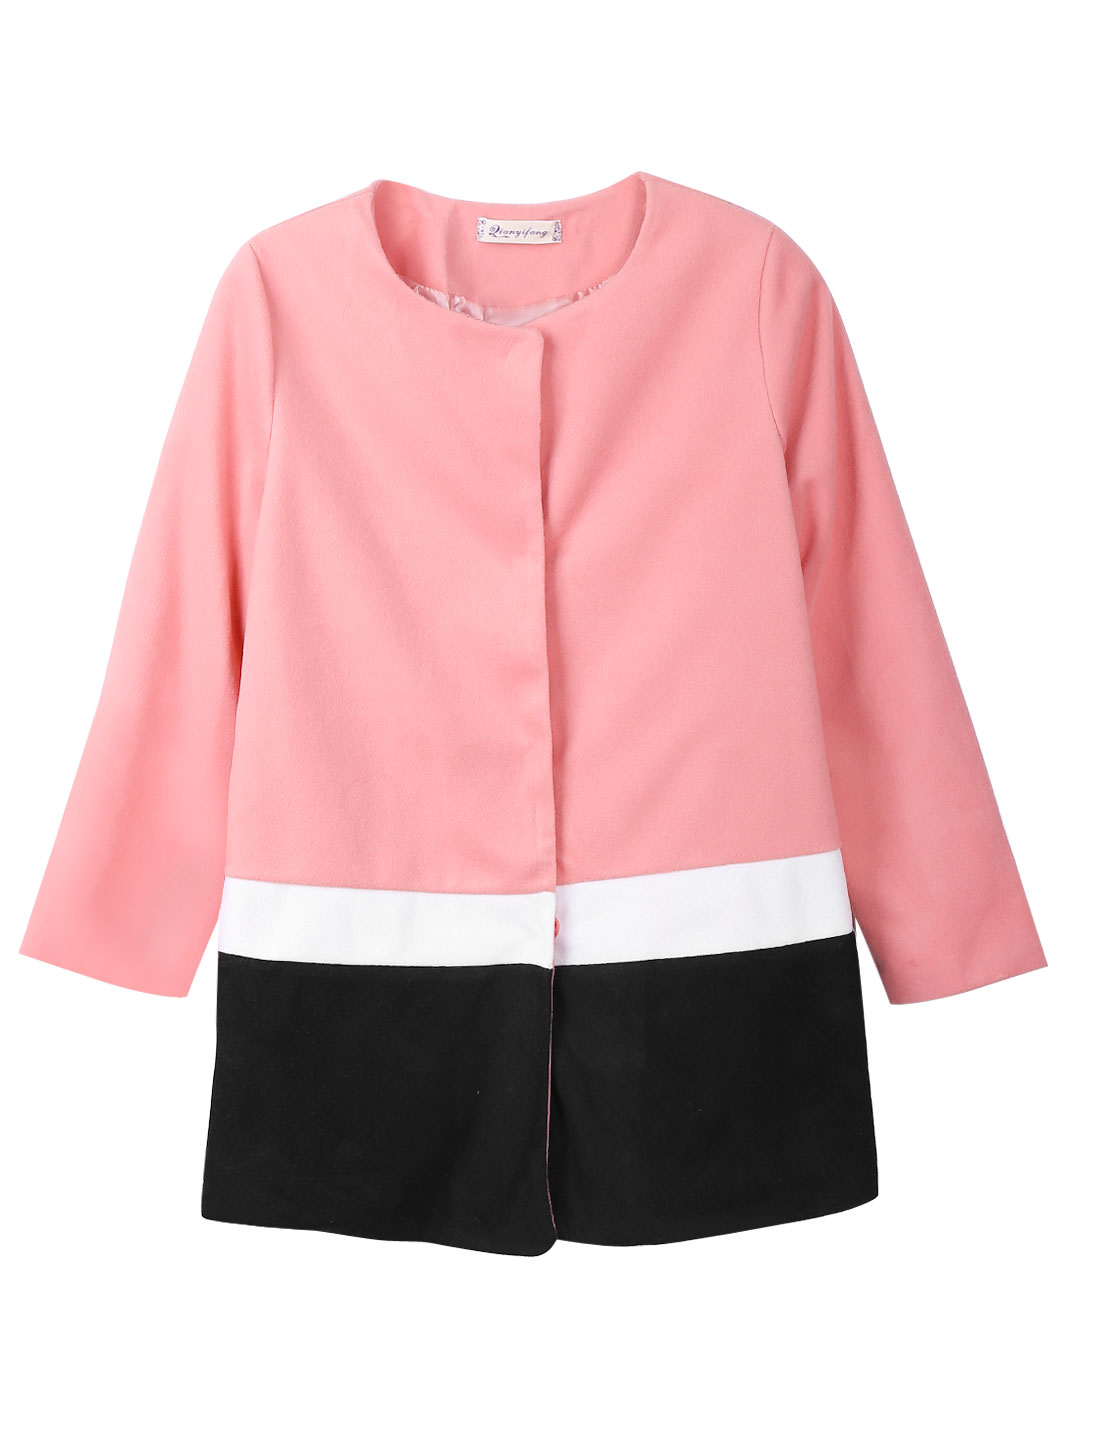 Women Round Neck Long Sleeves Contrast Color Casual Worsted Coat Pink Black XS